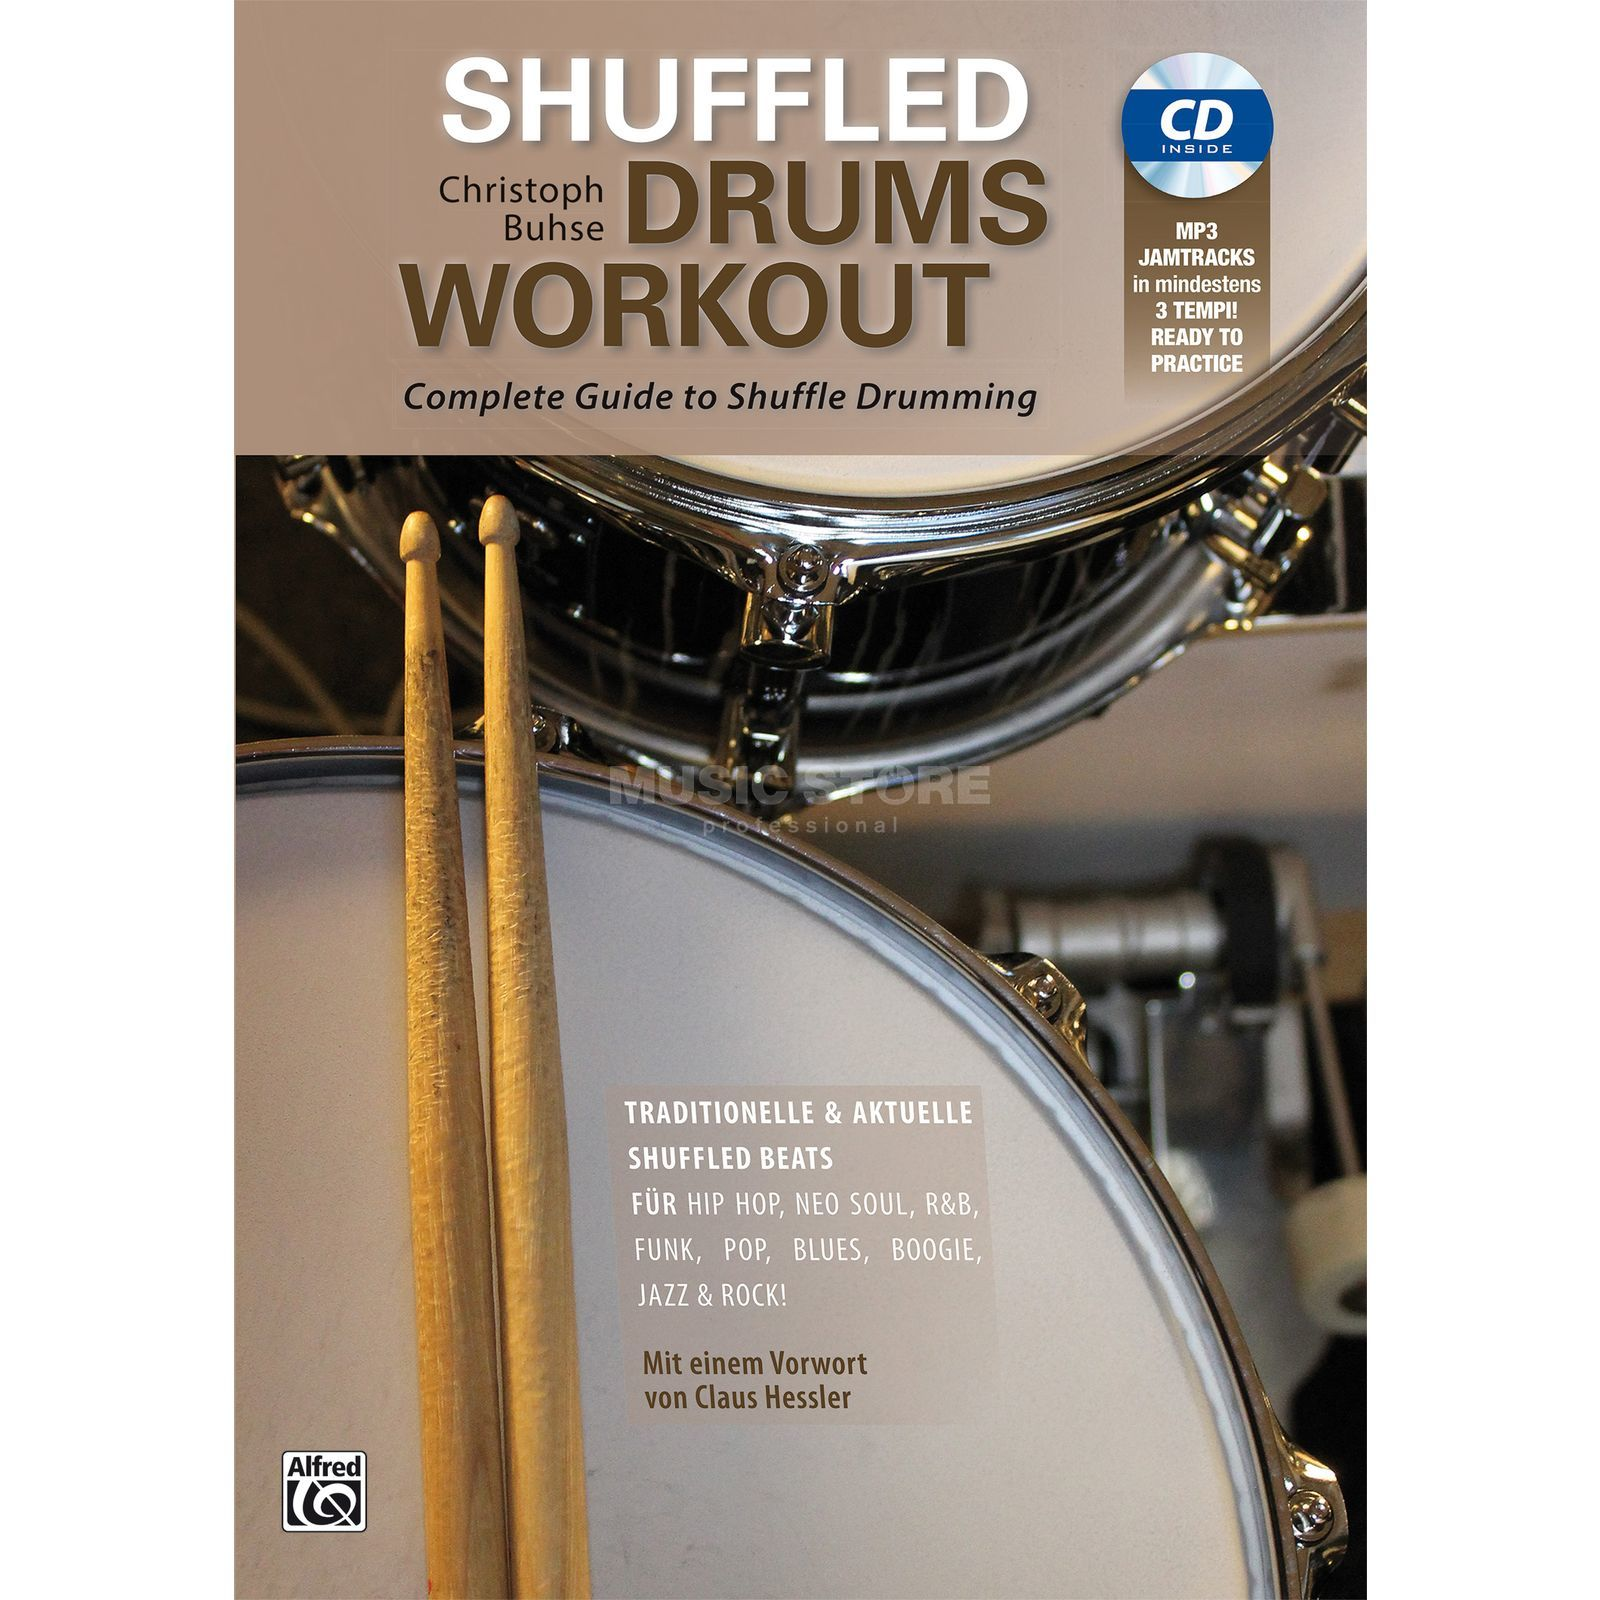 Alfred Music Shuffeld Drums Workout Christoph Buhse Produktbillede